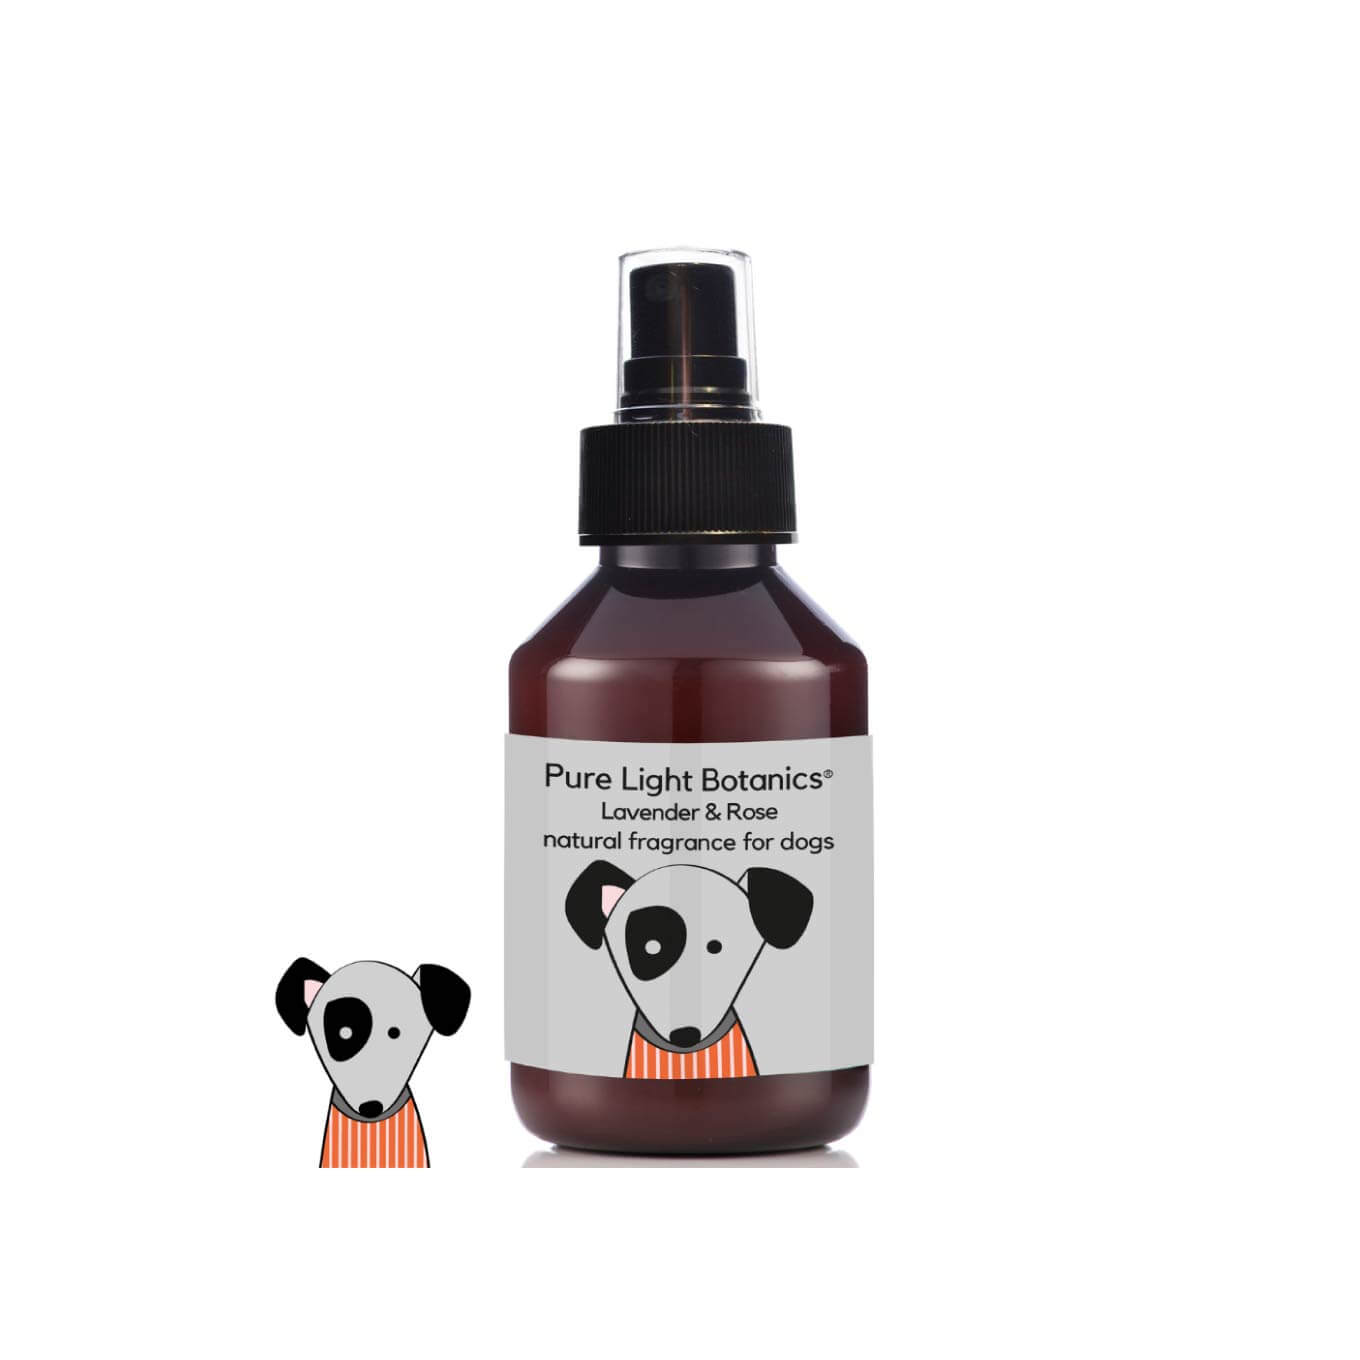 Pure Light Botanics Lavender & Rose Natural Fragrance for Dogs (100ml) - Shop Vanillapup Online Pet Shop